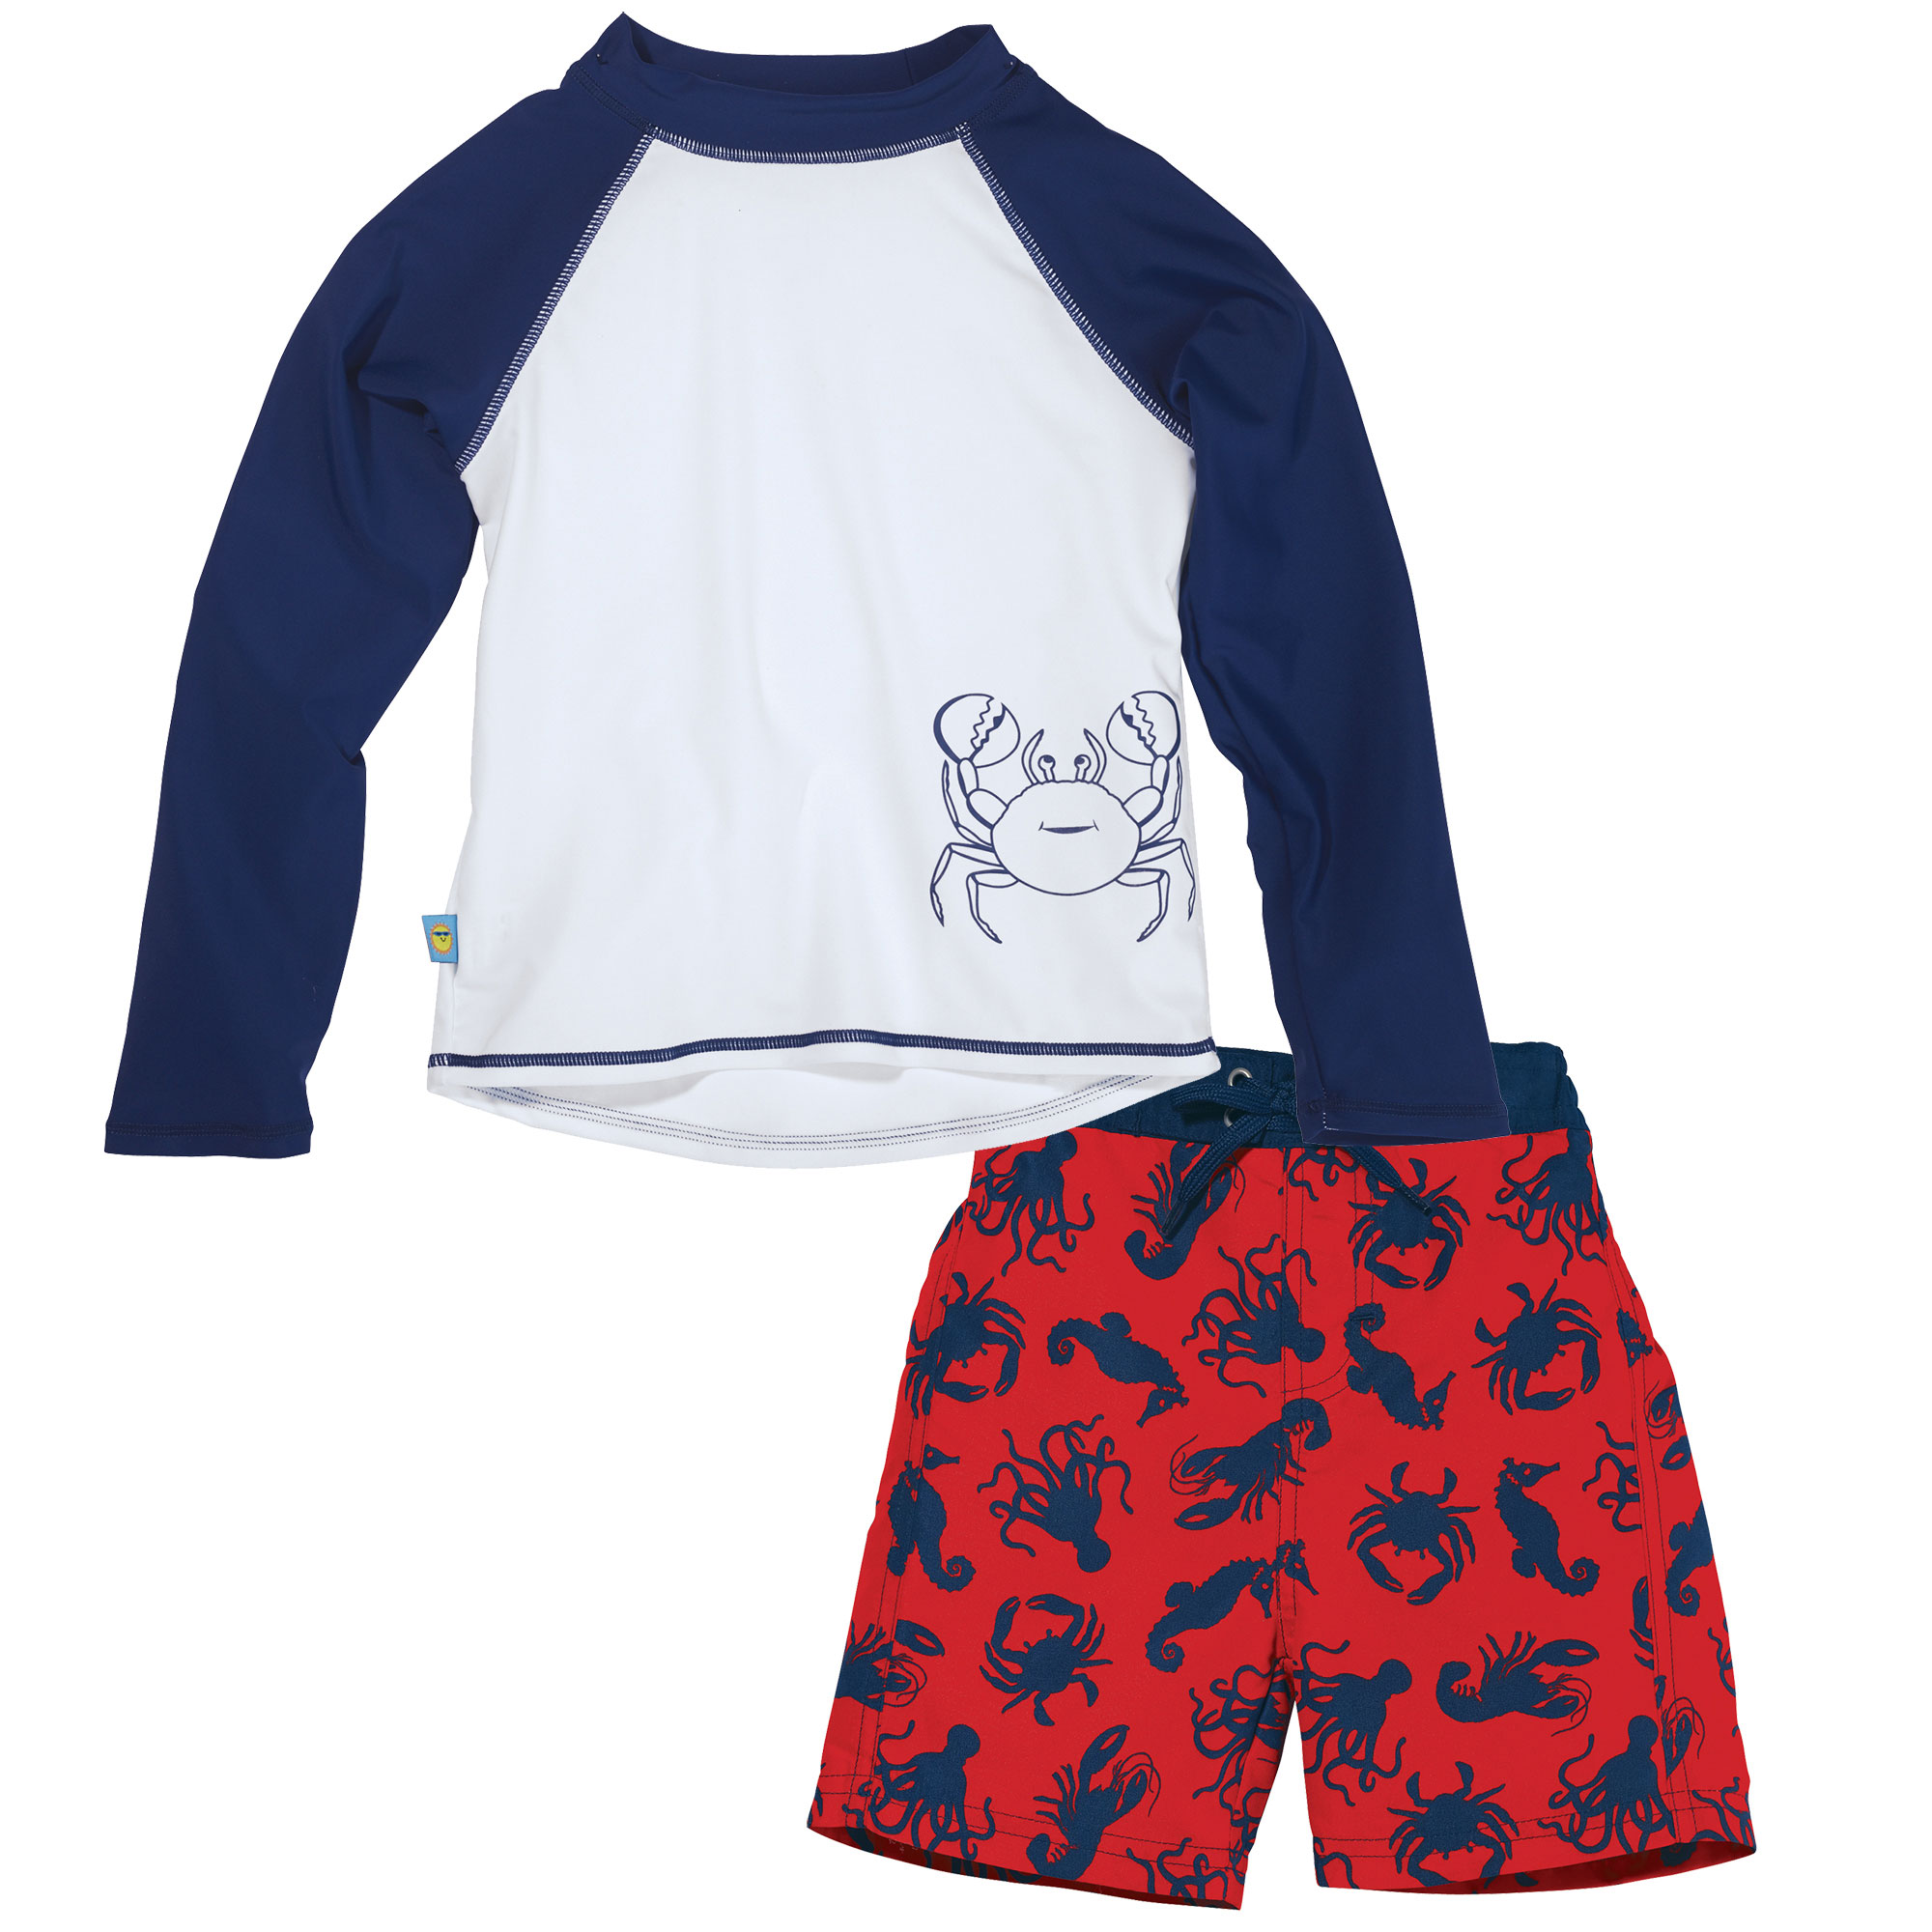 Sun Smarties Baby Boy Swim Diaper and Rashguard - Red, White and Blue Sealife - Boardshorts and Long Sleeve Swim Shirt